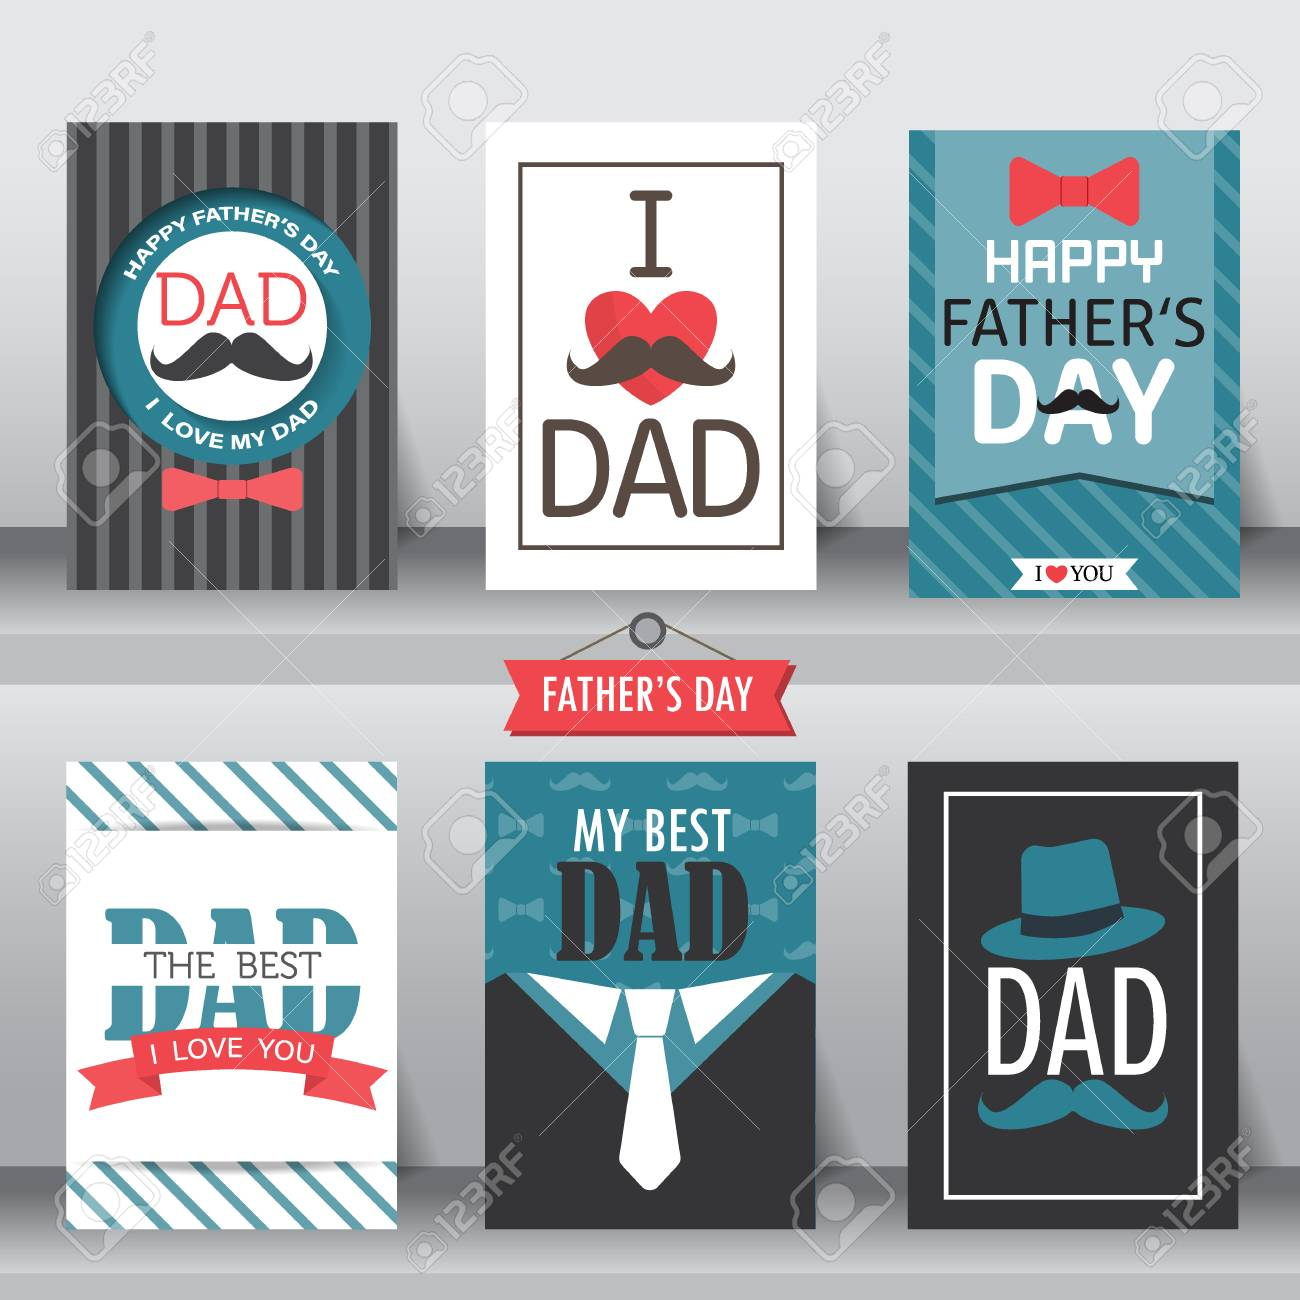 Happy S Father Day Poster Set Flat Design Can Be Use For Greeting